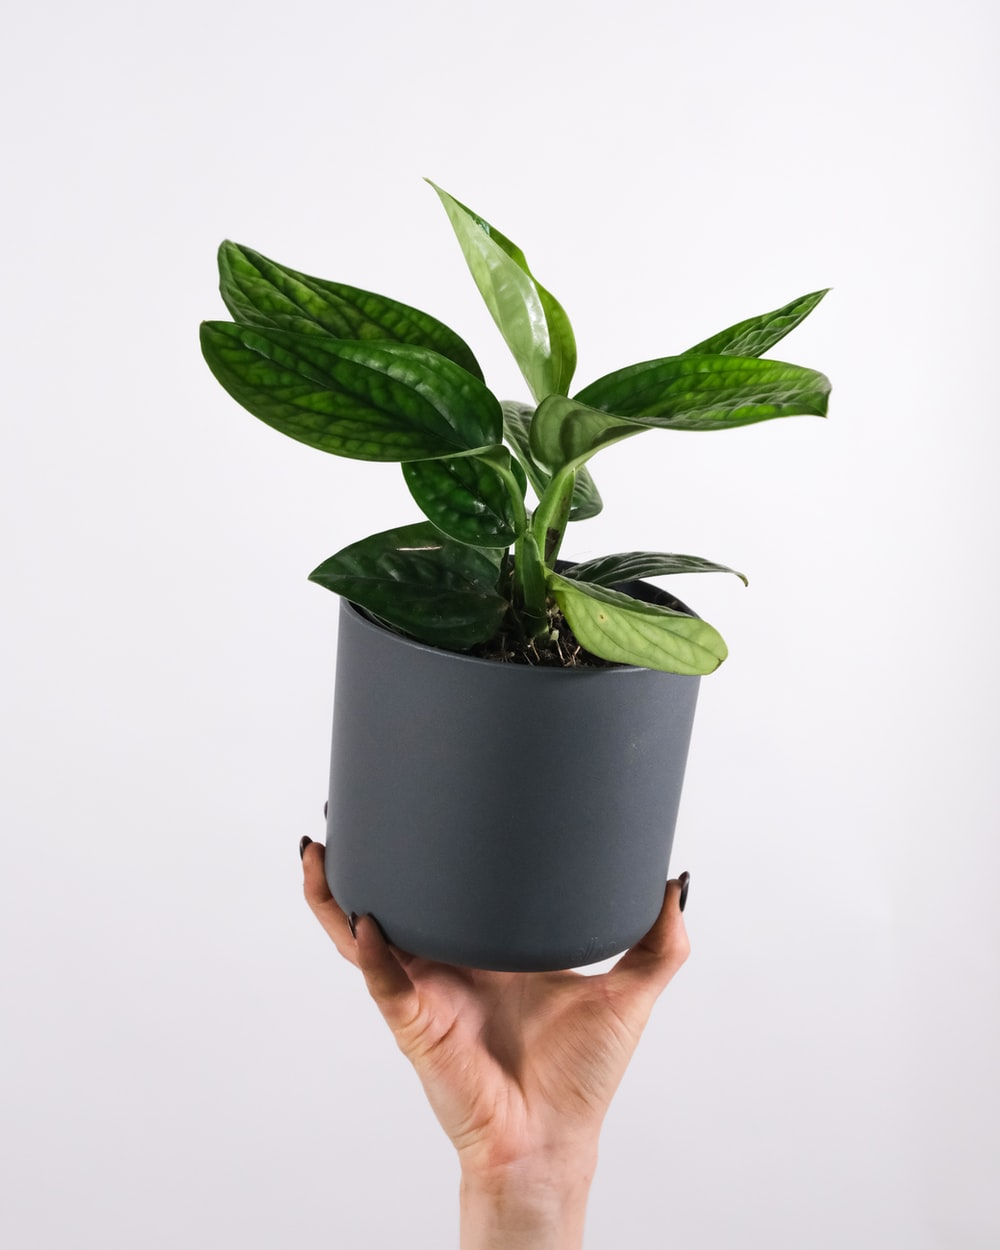 person holding green potted plant